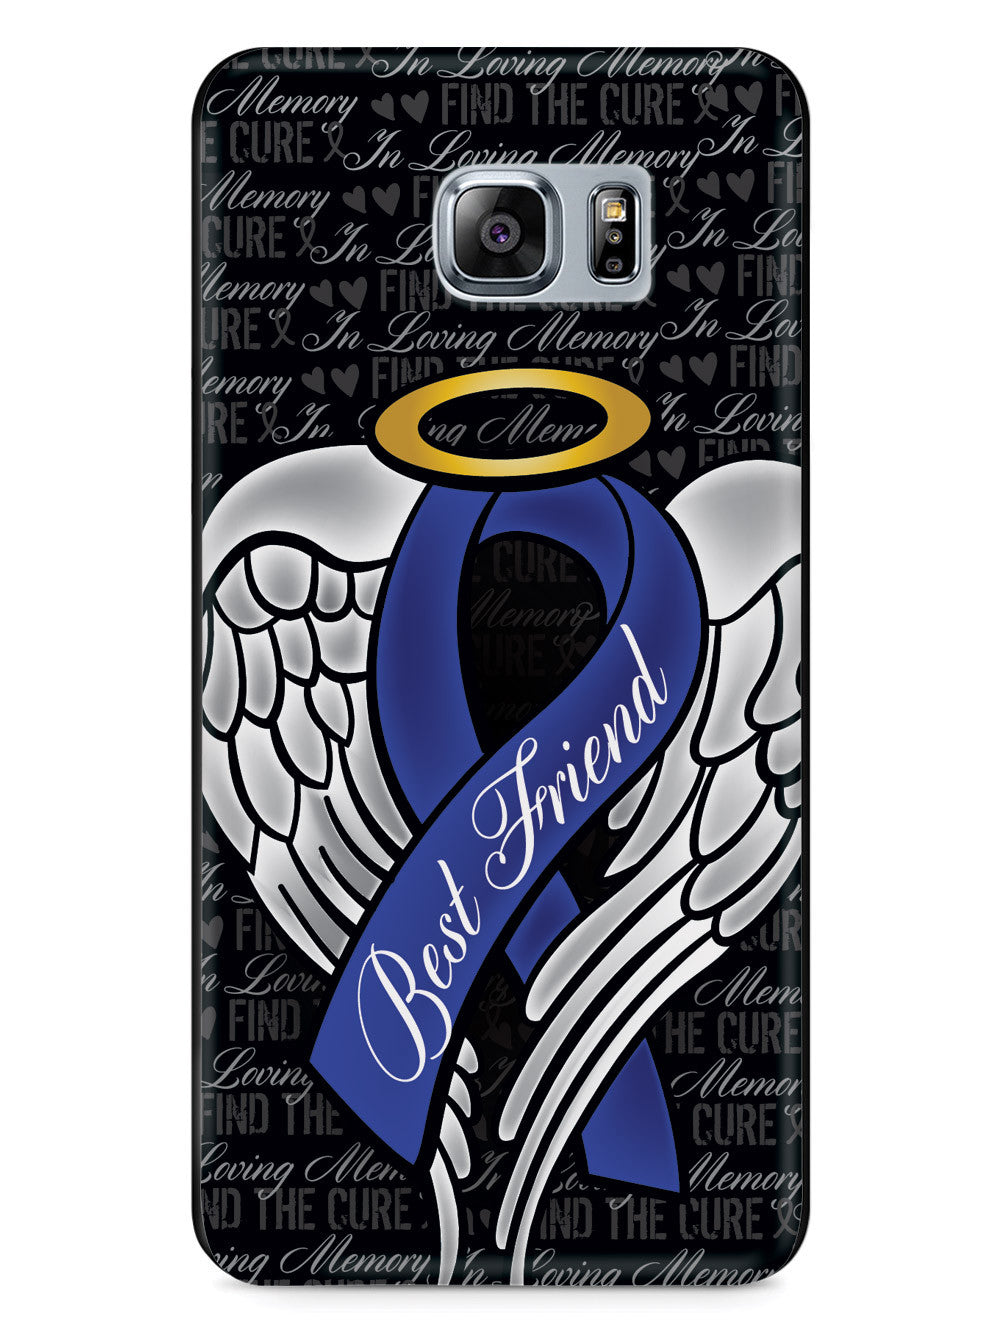 In Loving Memory of My Best Friend - Blue Ribbon Case